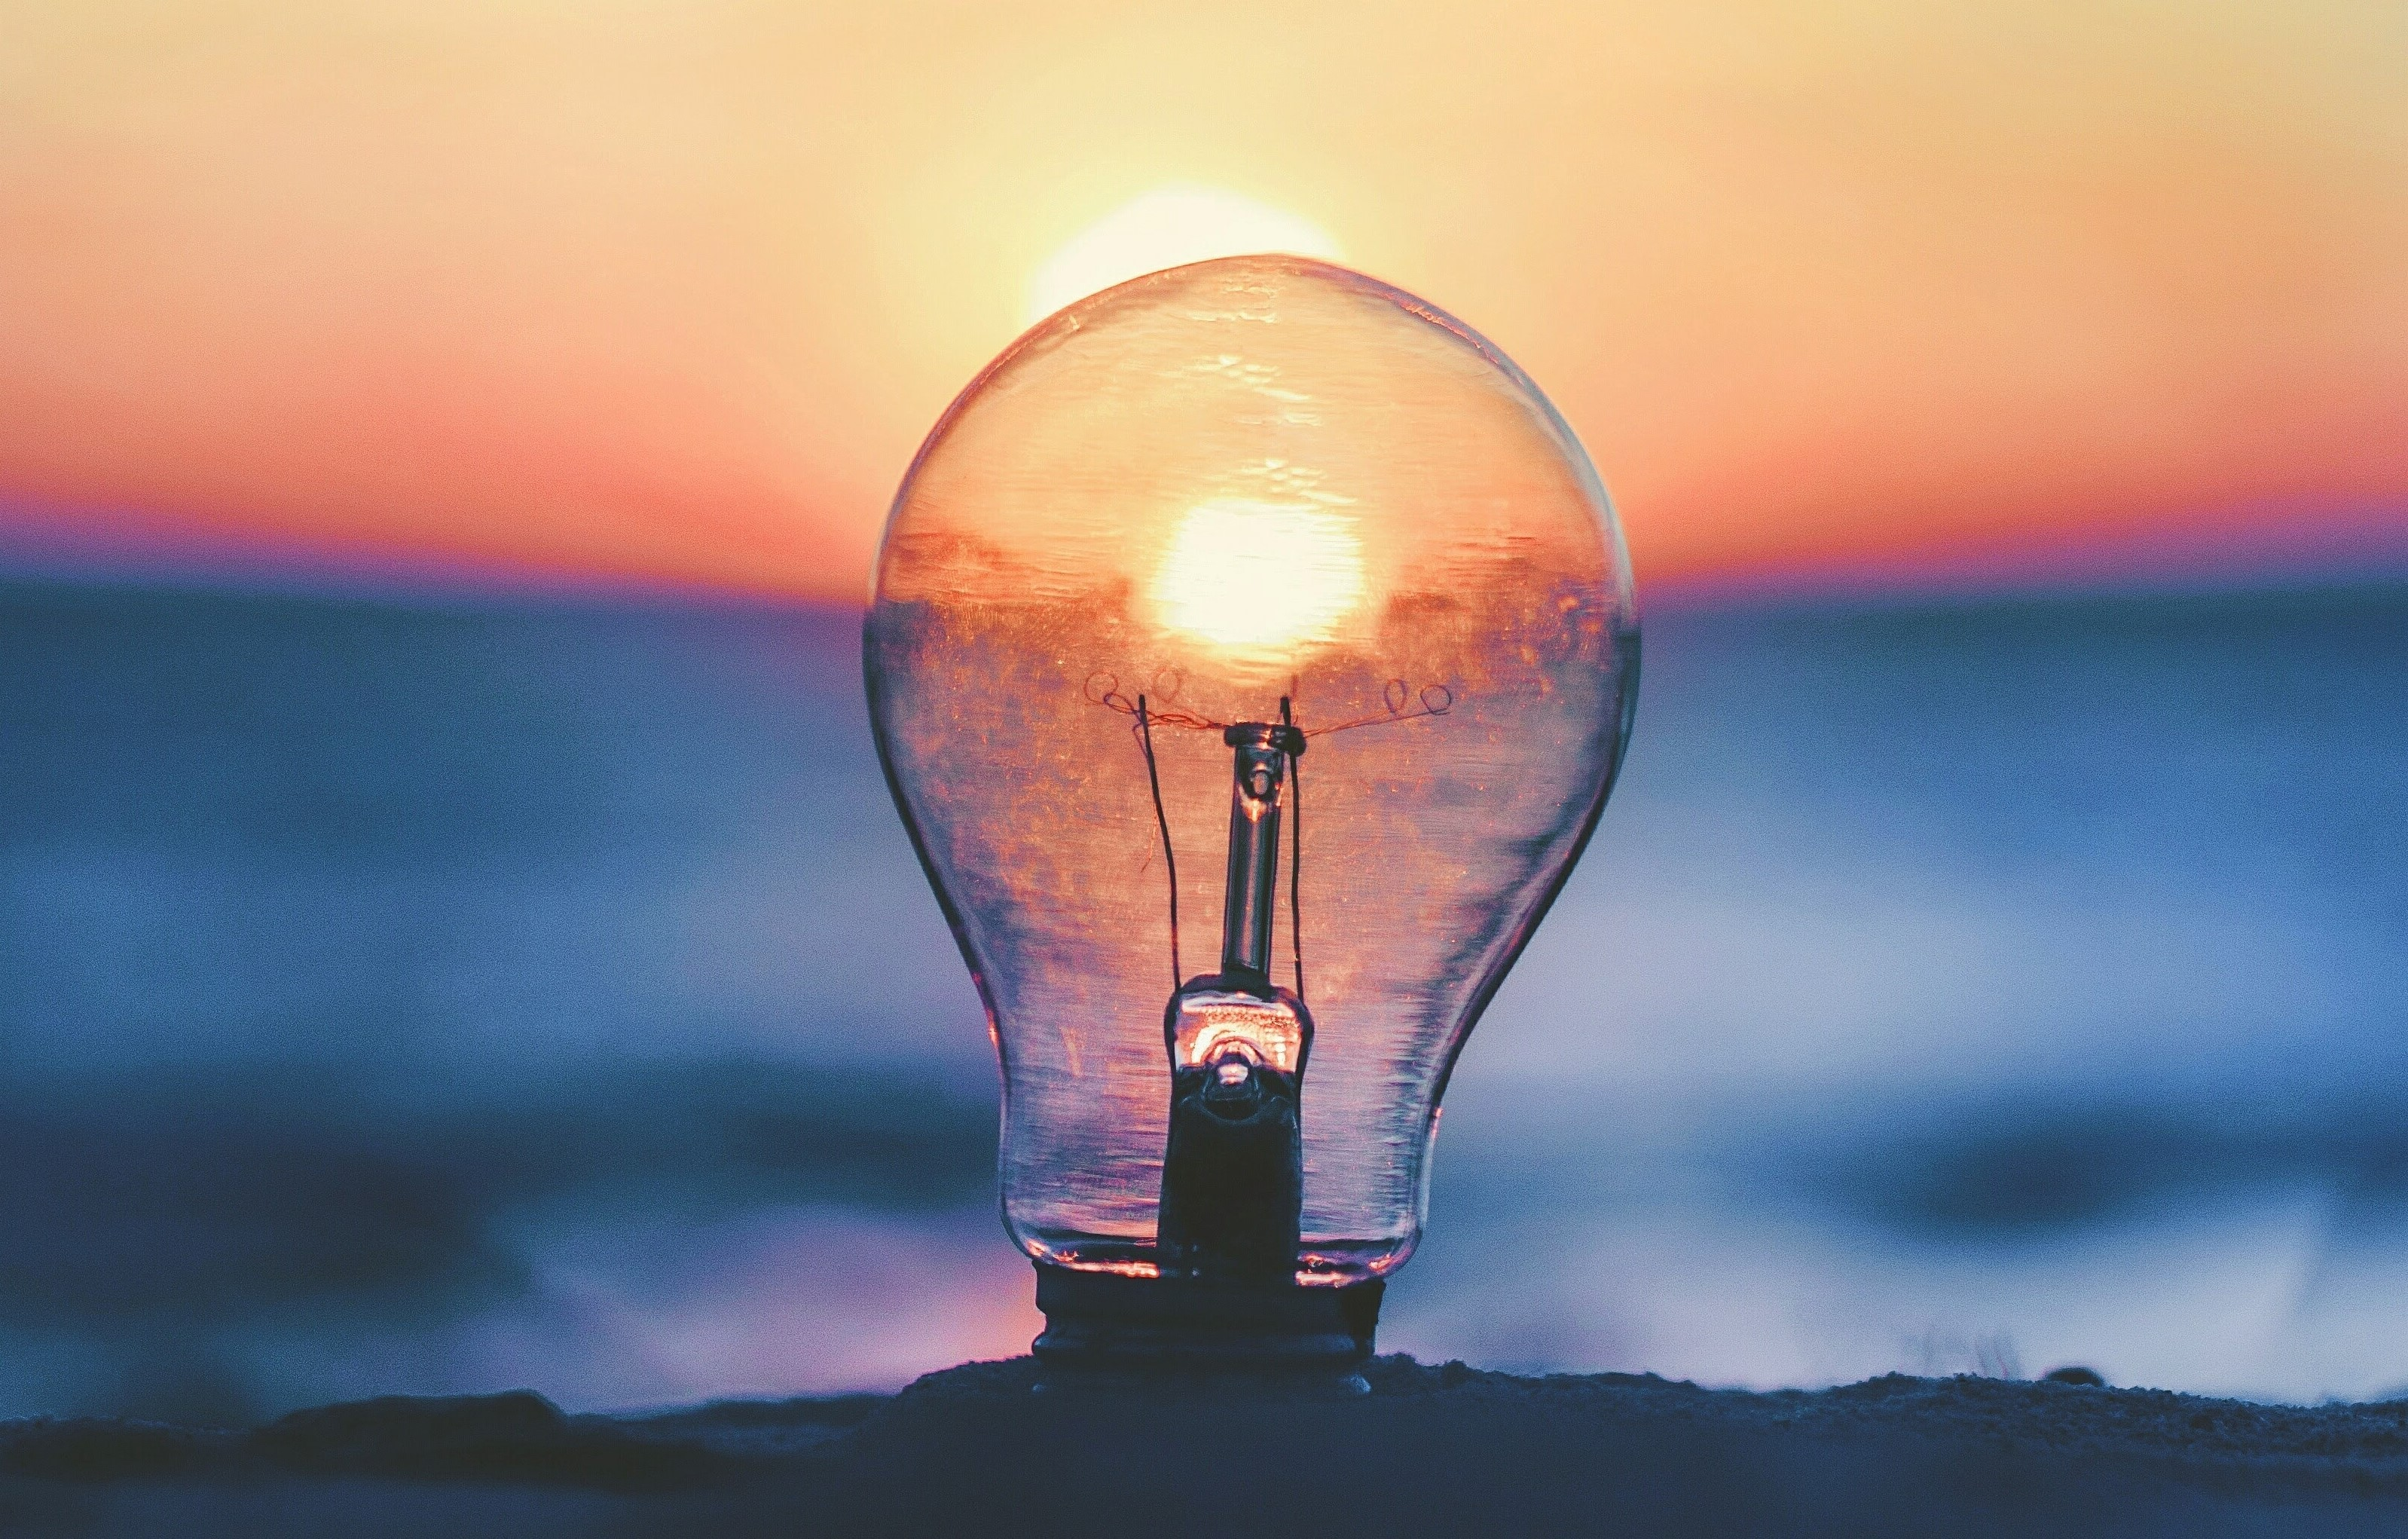 A lightbulb represents innovation and inventive thought